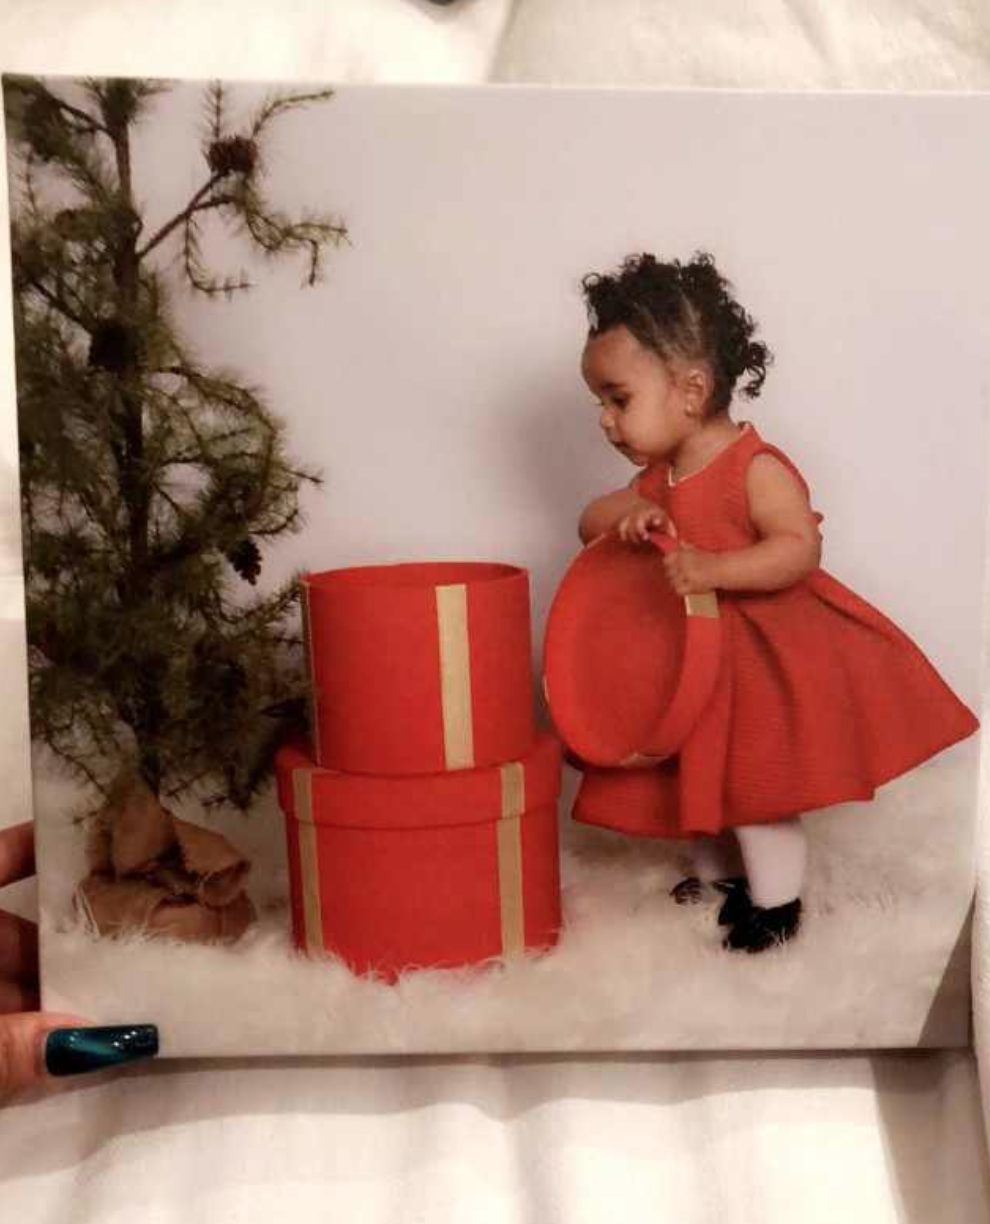 Dream Kardashian Got to Be in TWO Christmas Cards This Year